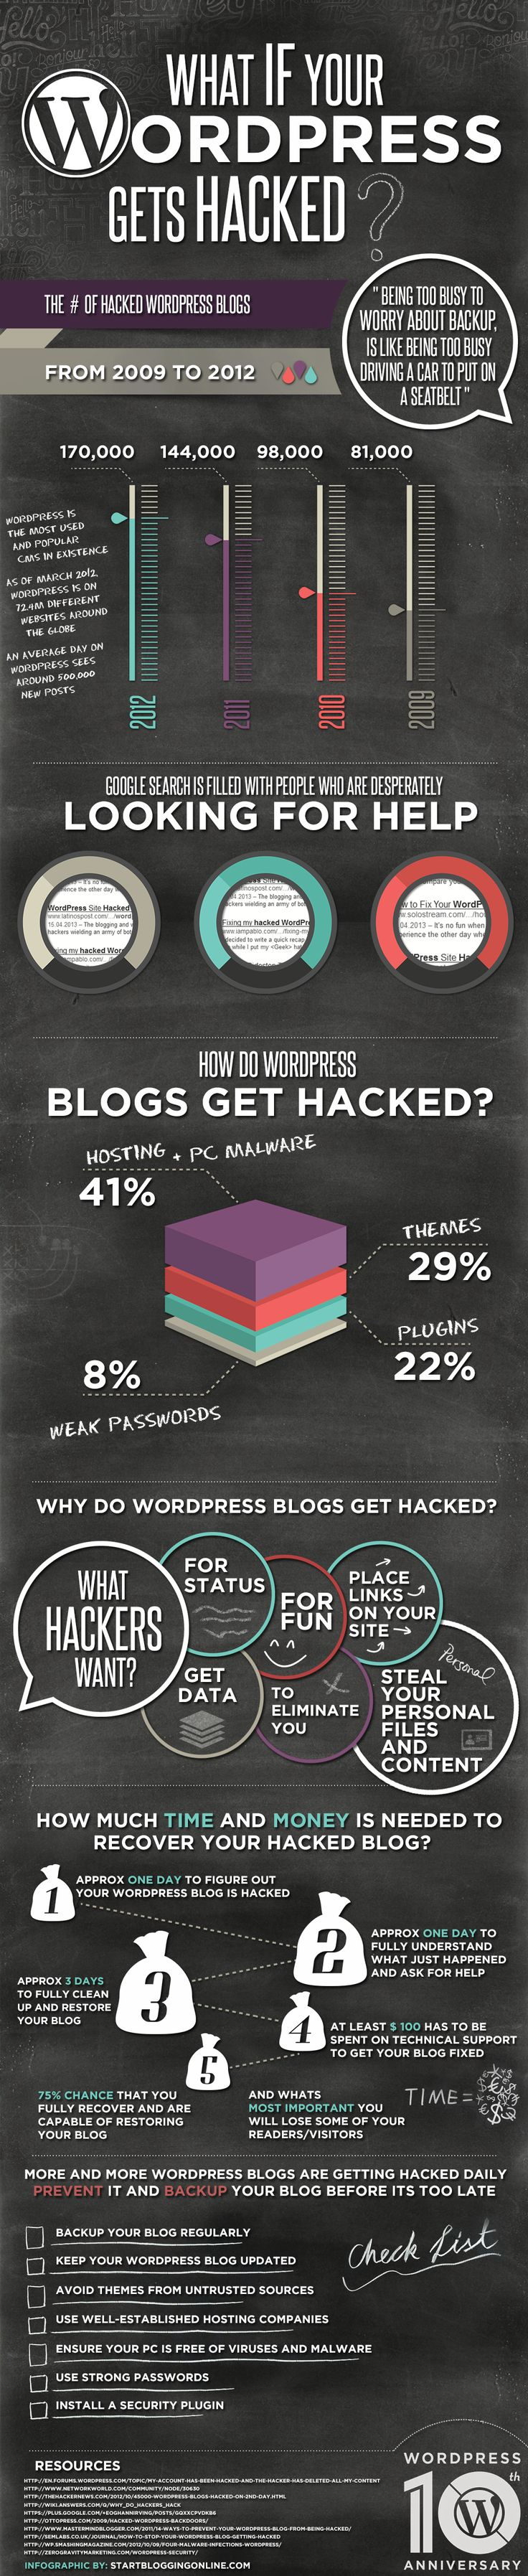 What happens if your WordPress gets hacked? Learn why you should backup your WordPress blog.